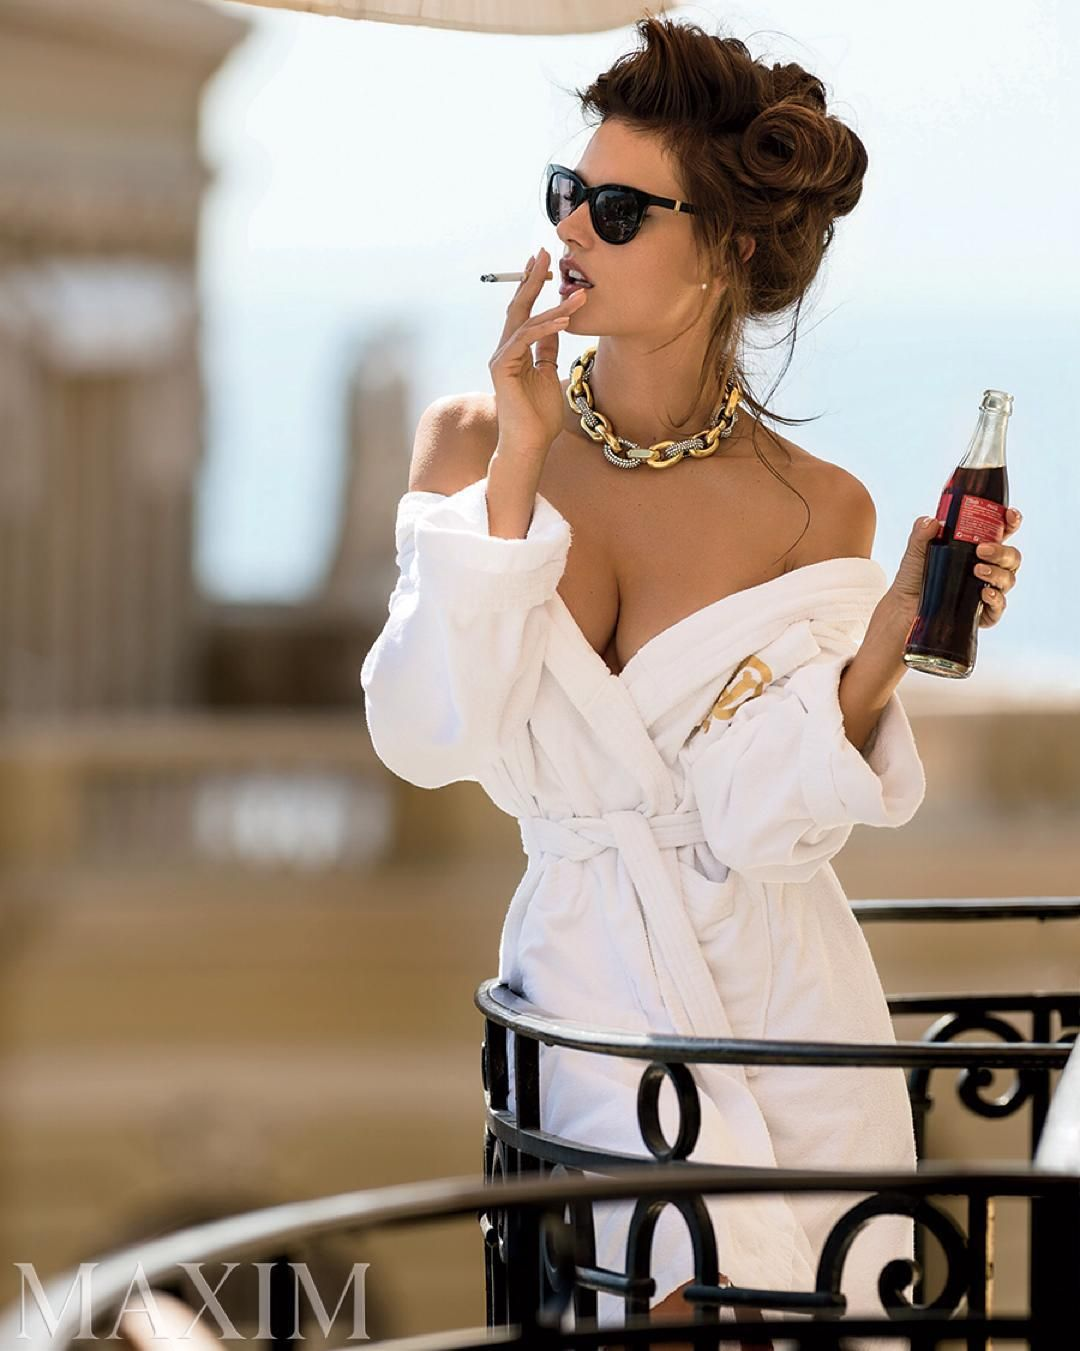 Supermodel Alessandra Ambrosio Sips A Classic Coca Cola While Taking In The Spectacular Views Of